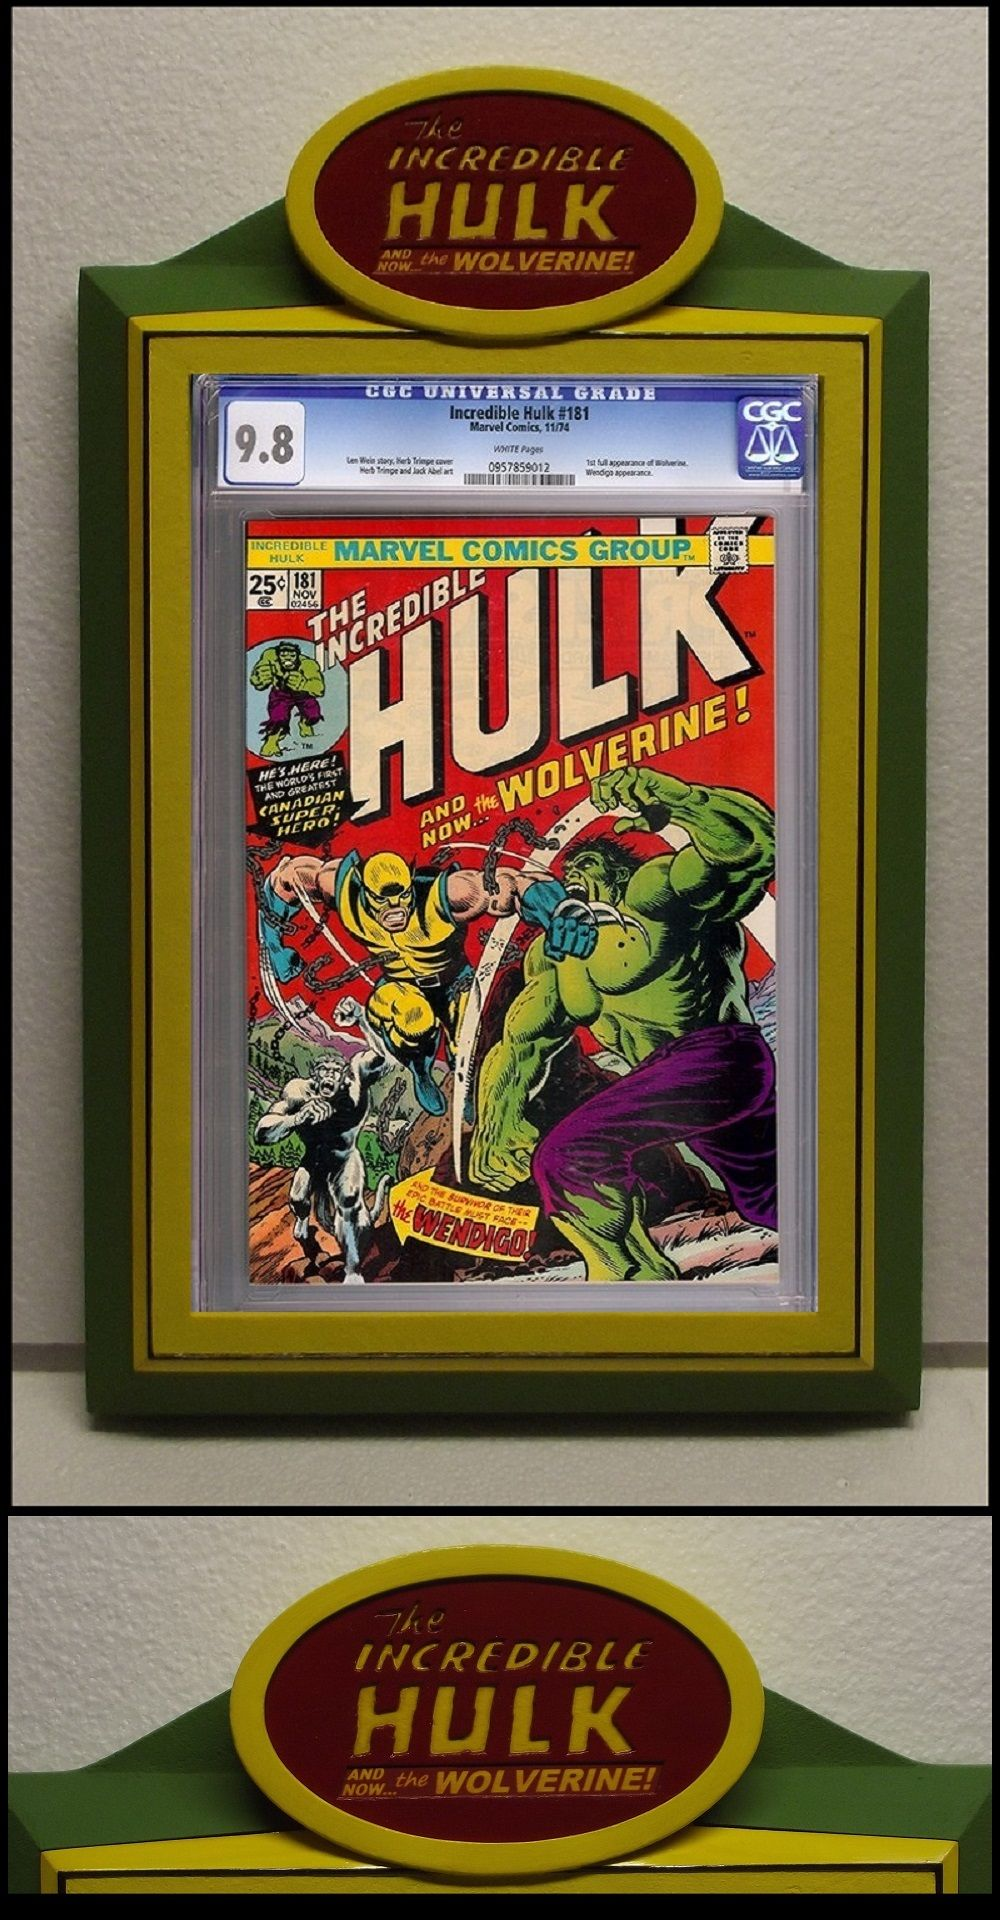 Custom Incredible HULK CGC Comic Book Frame (crafted specifically ...